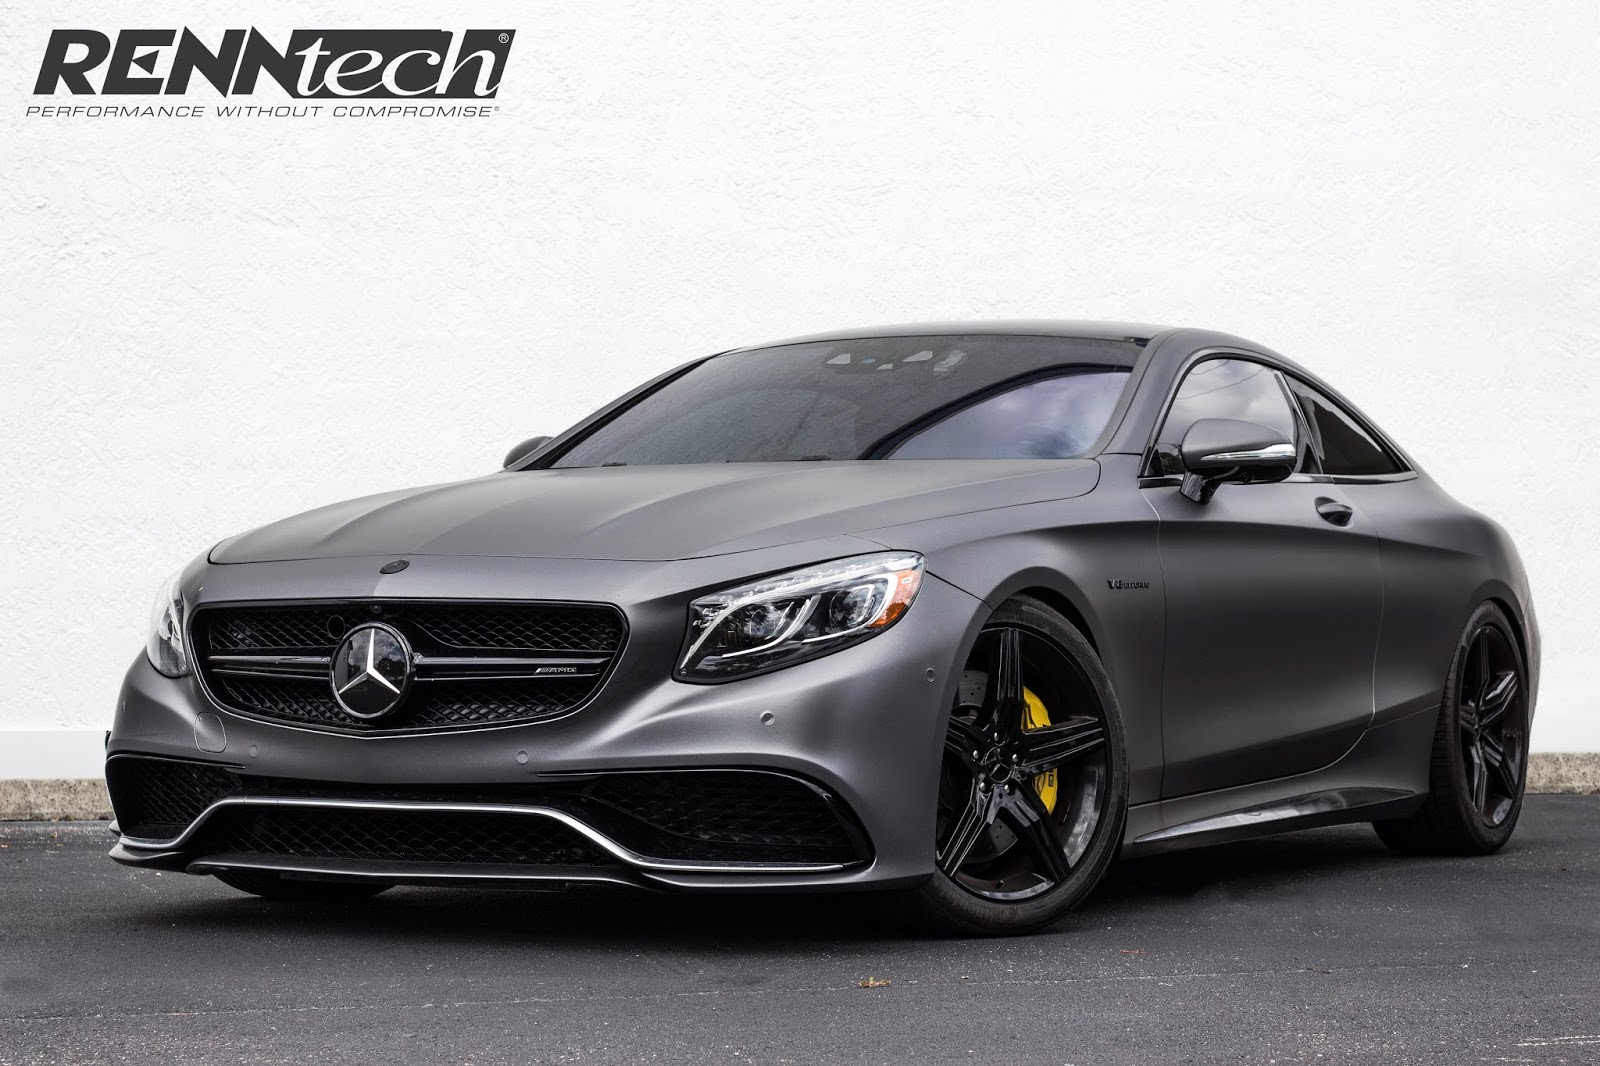 Mercedes-AMG S 63 Coupe Gets Tuning Package From RENNtech, Reaches